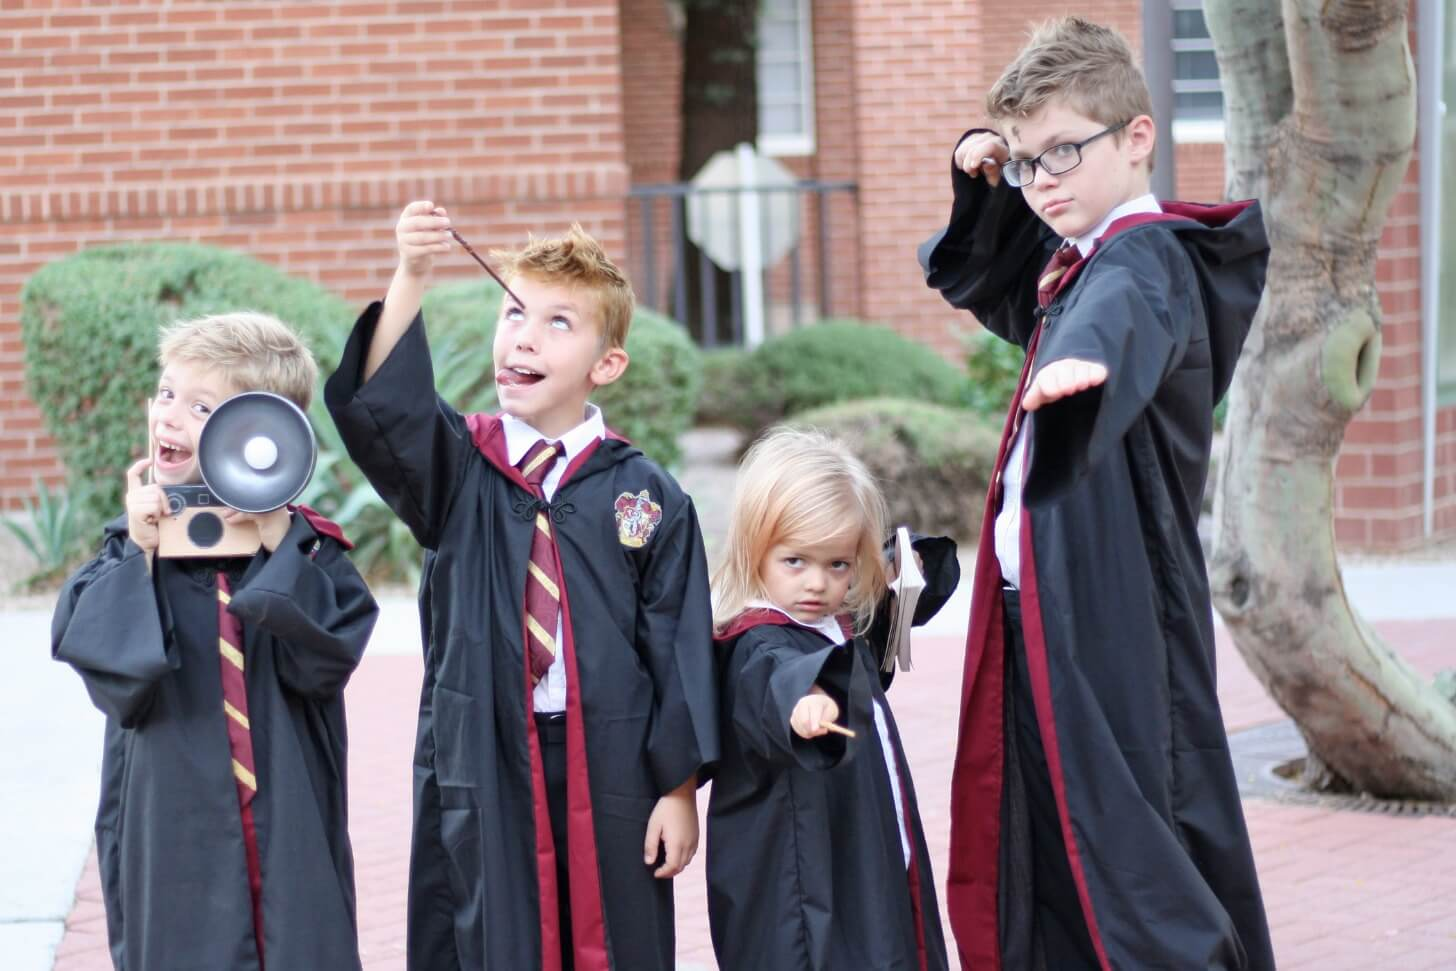 Https://www.ourkerrazyadventure.com/diy-family-harry-potter-costumes-ideas/